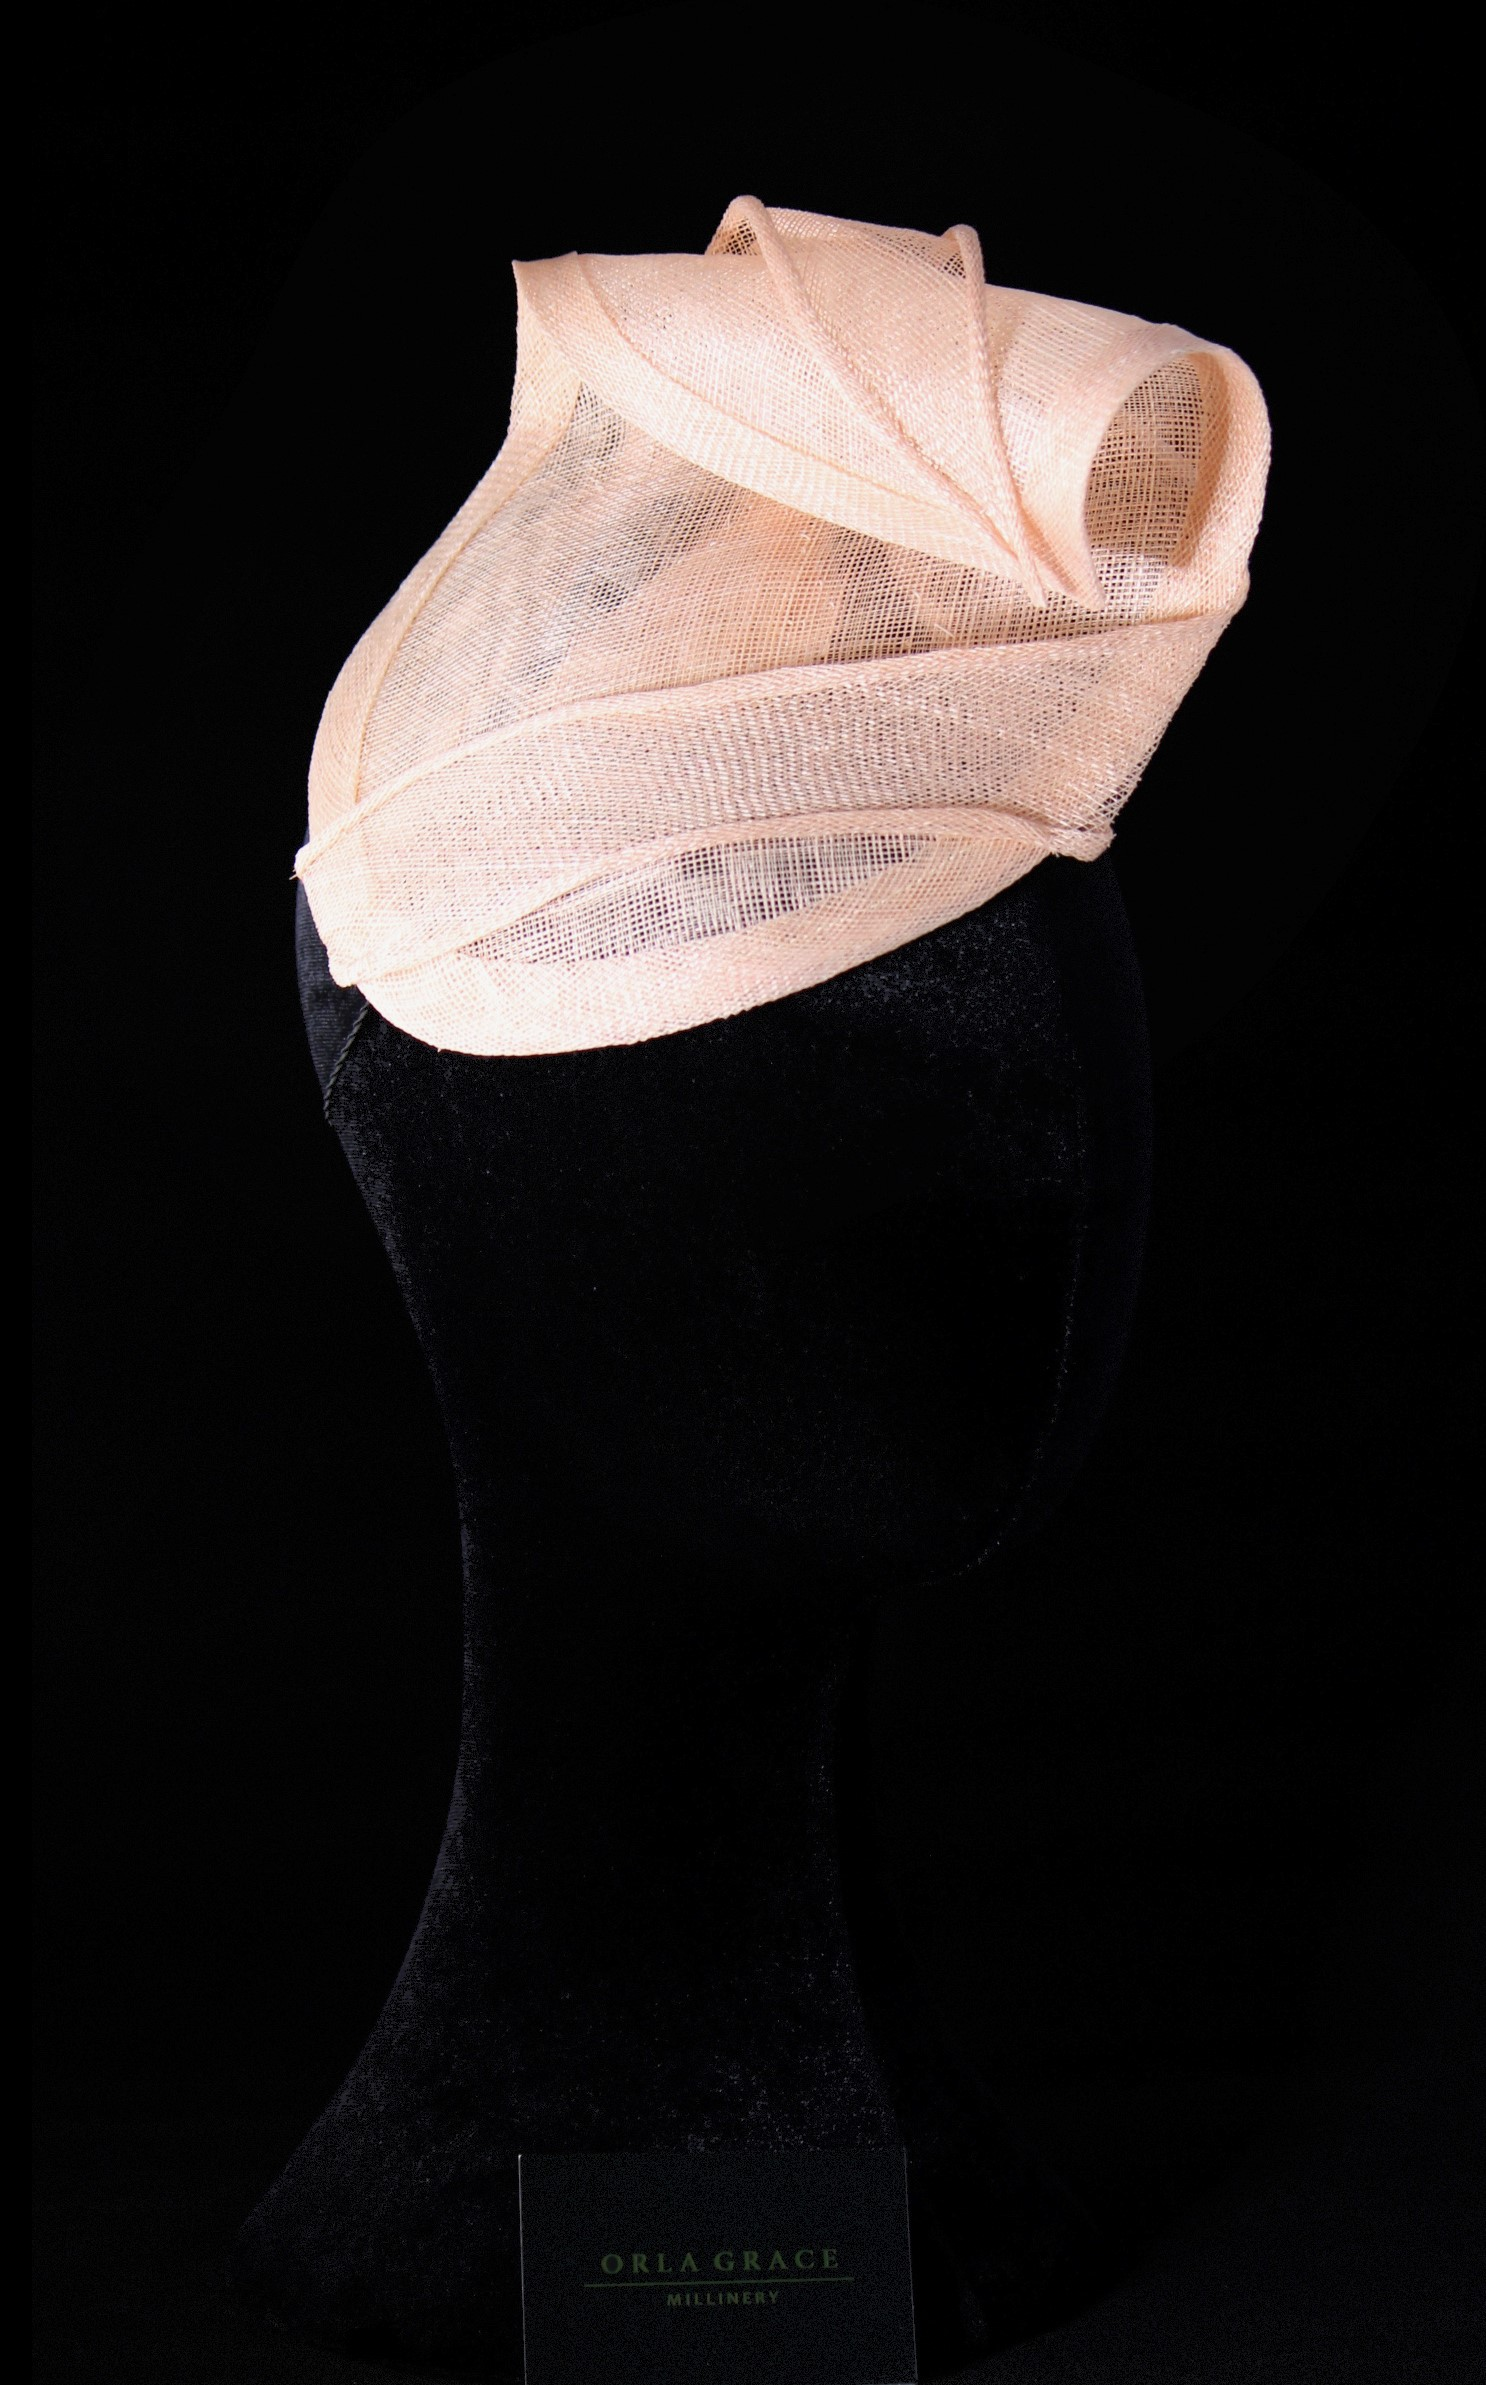 Ladies hat, race day hat, mother of the bride hat, mother of the groom hat, irish millinery, irish design, irish fashion, wedding guest fashion